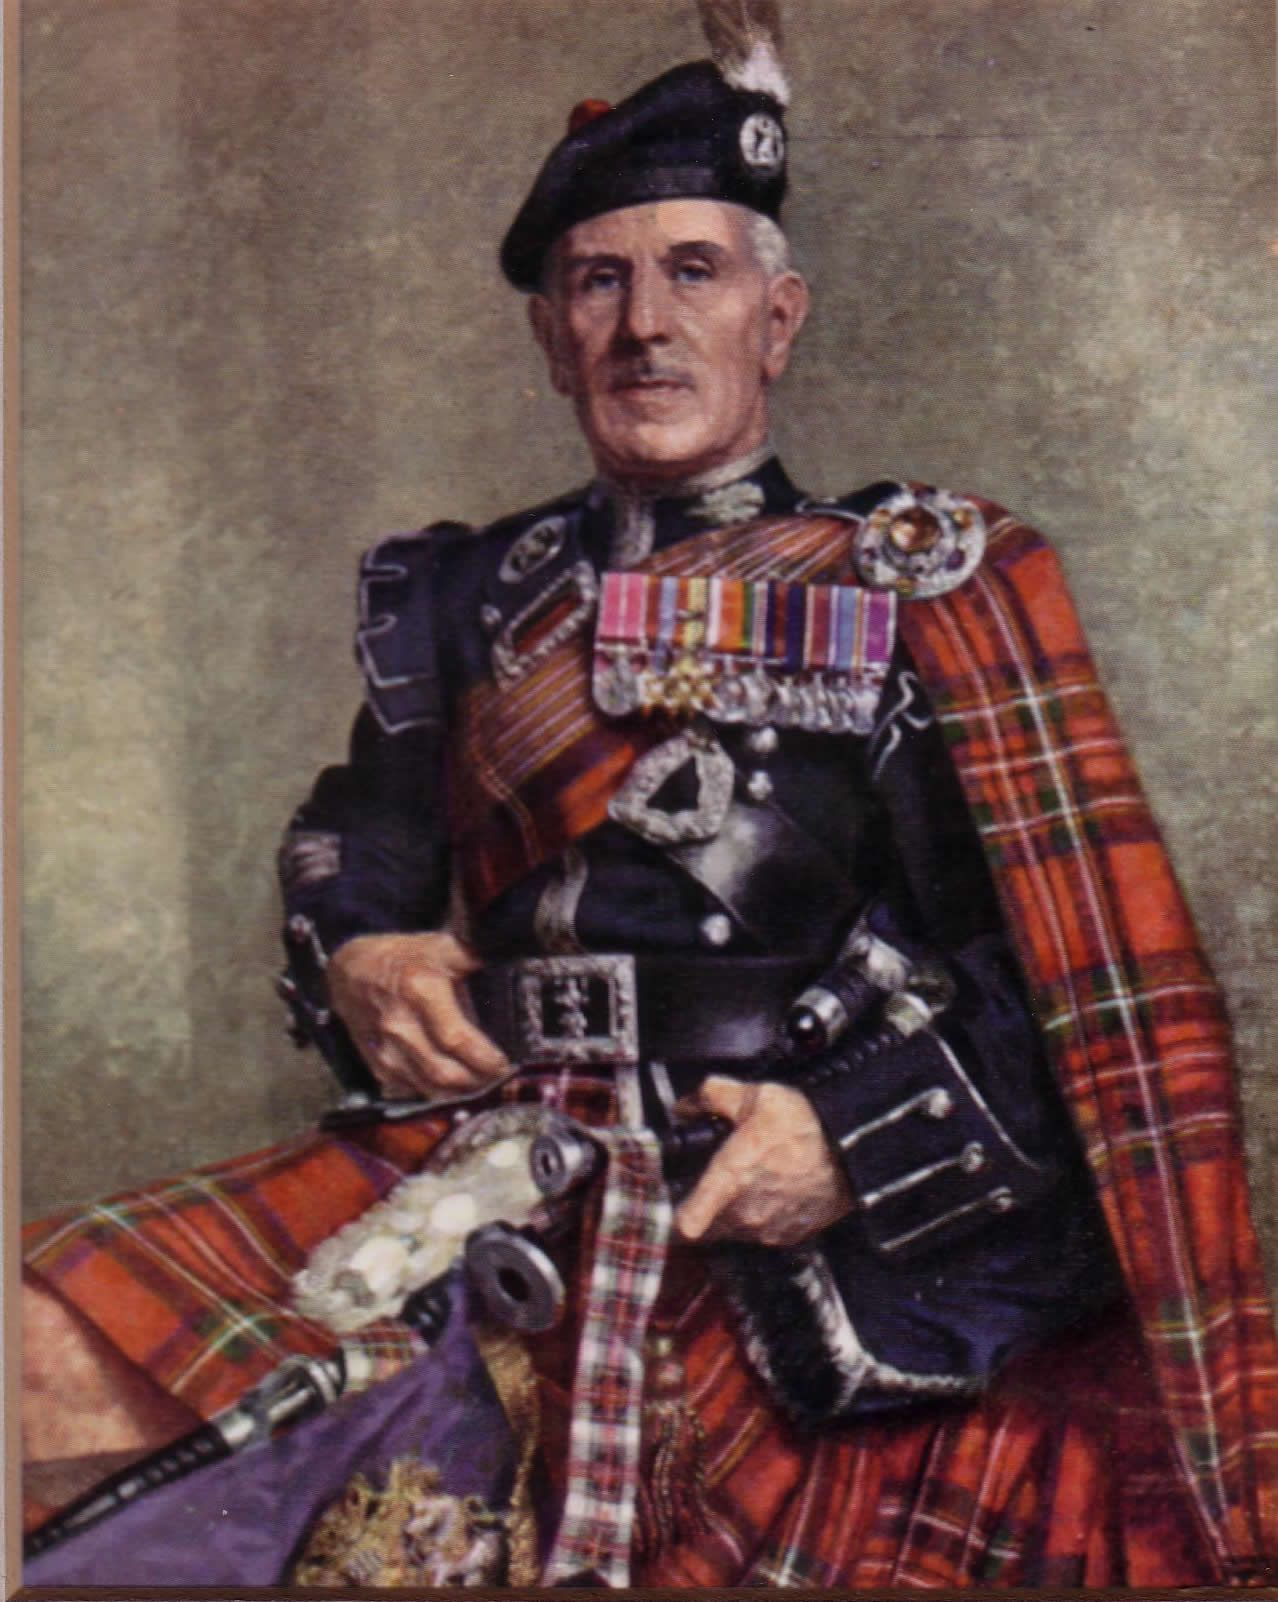 Pipe Major Alexander MacDonald of the 1st Battalion Scots Guards (1931 -  1945). He held the post of